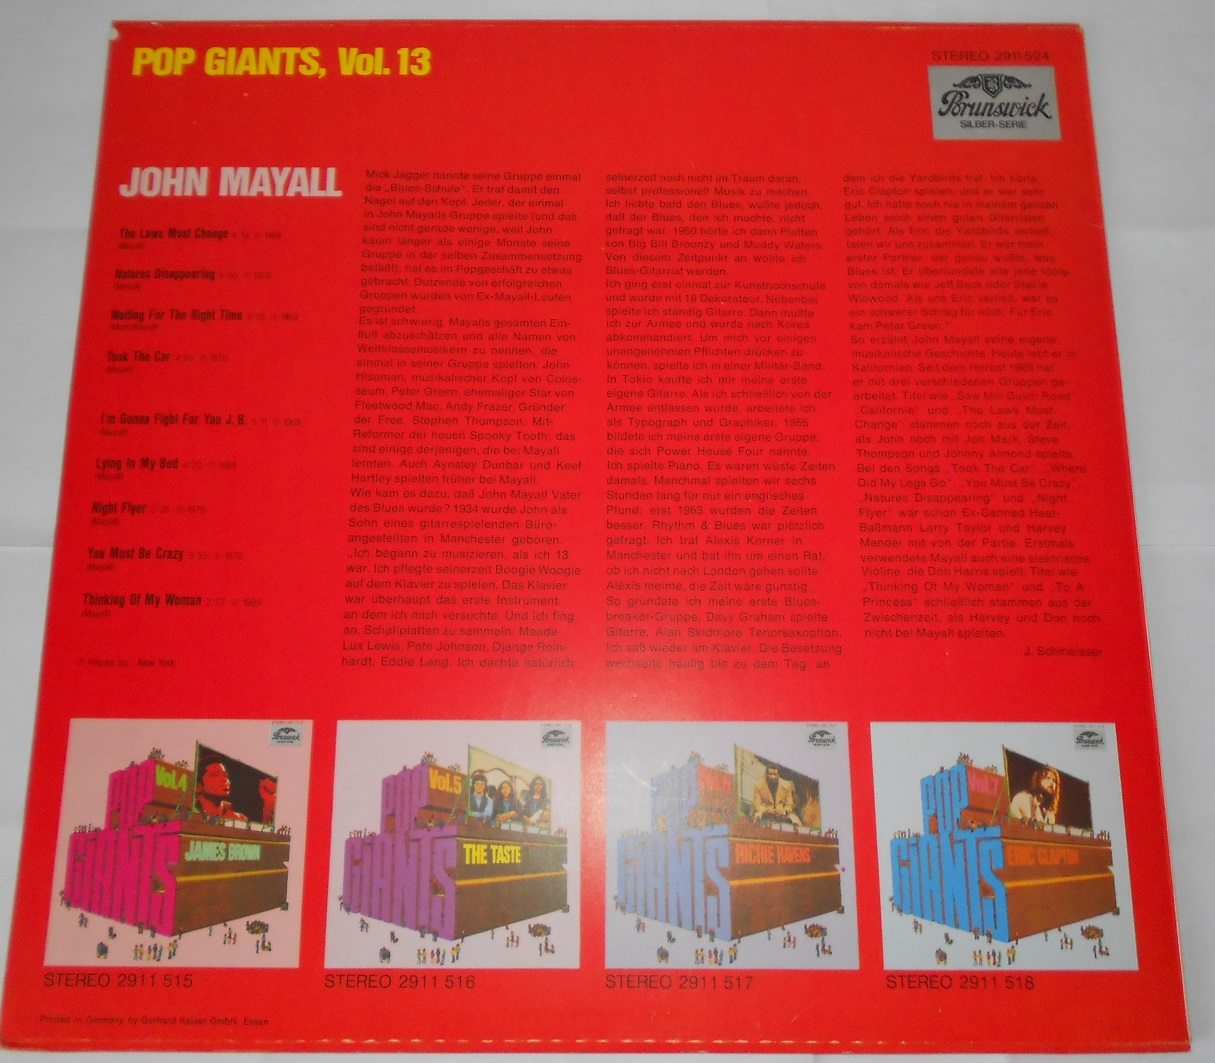 John Mayall & The Bluesbreakers ‎– Pop Giants, Vol. 13